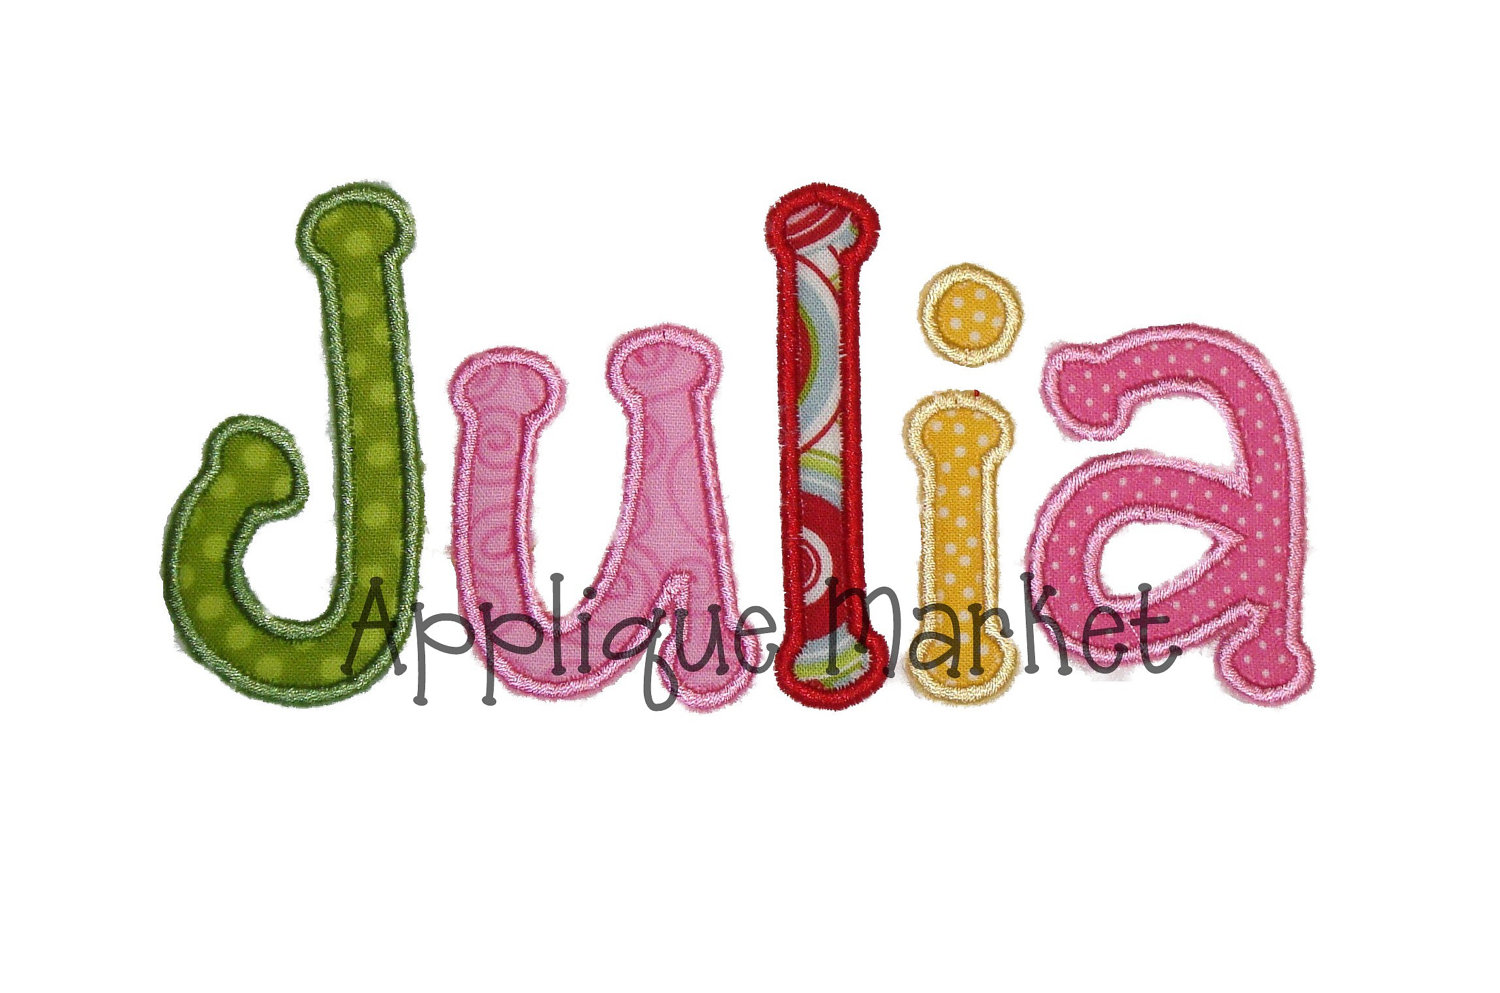 Machine embroidery designs applique alphabet images